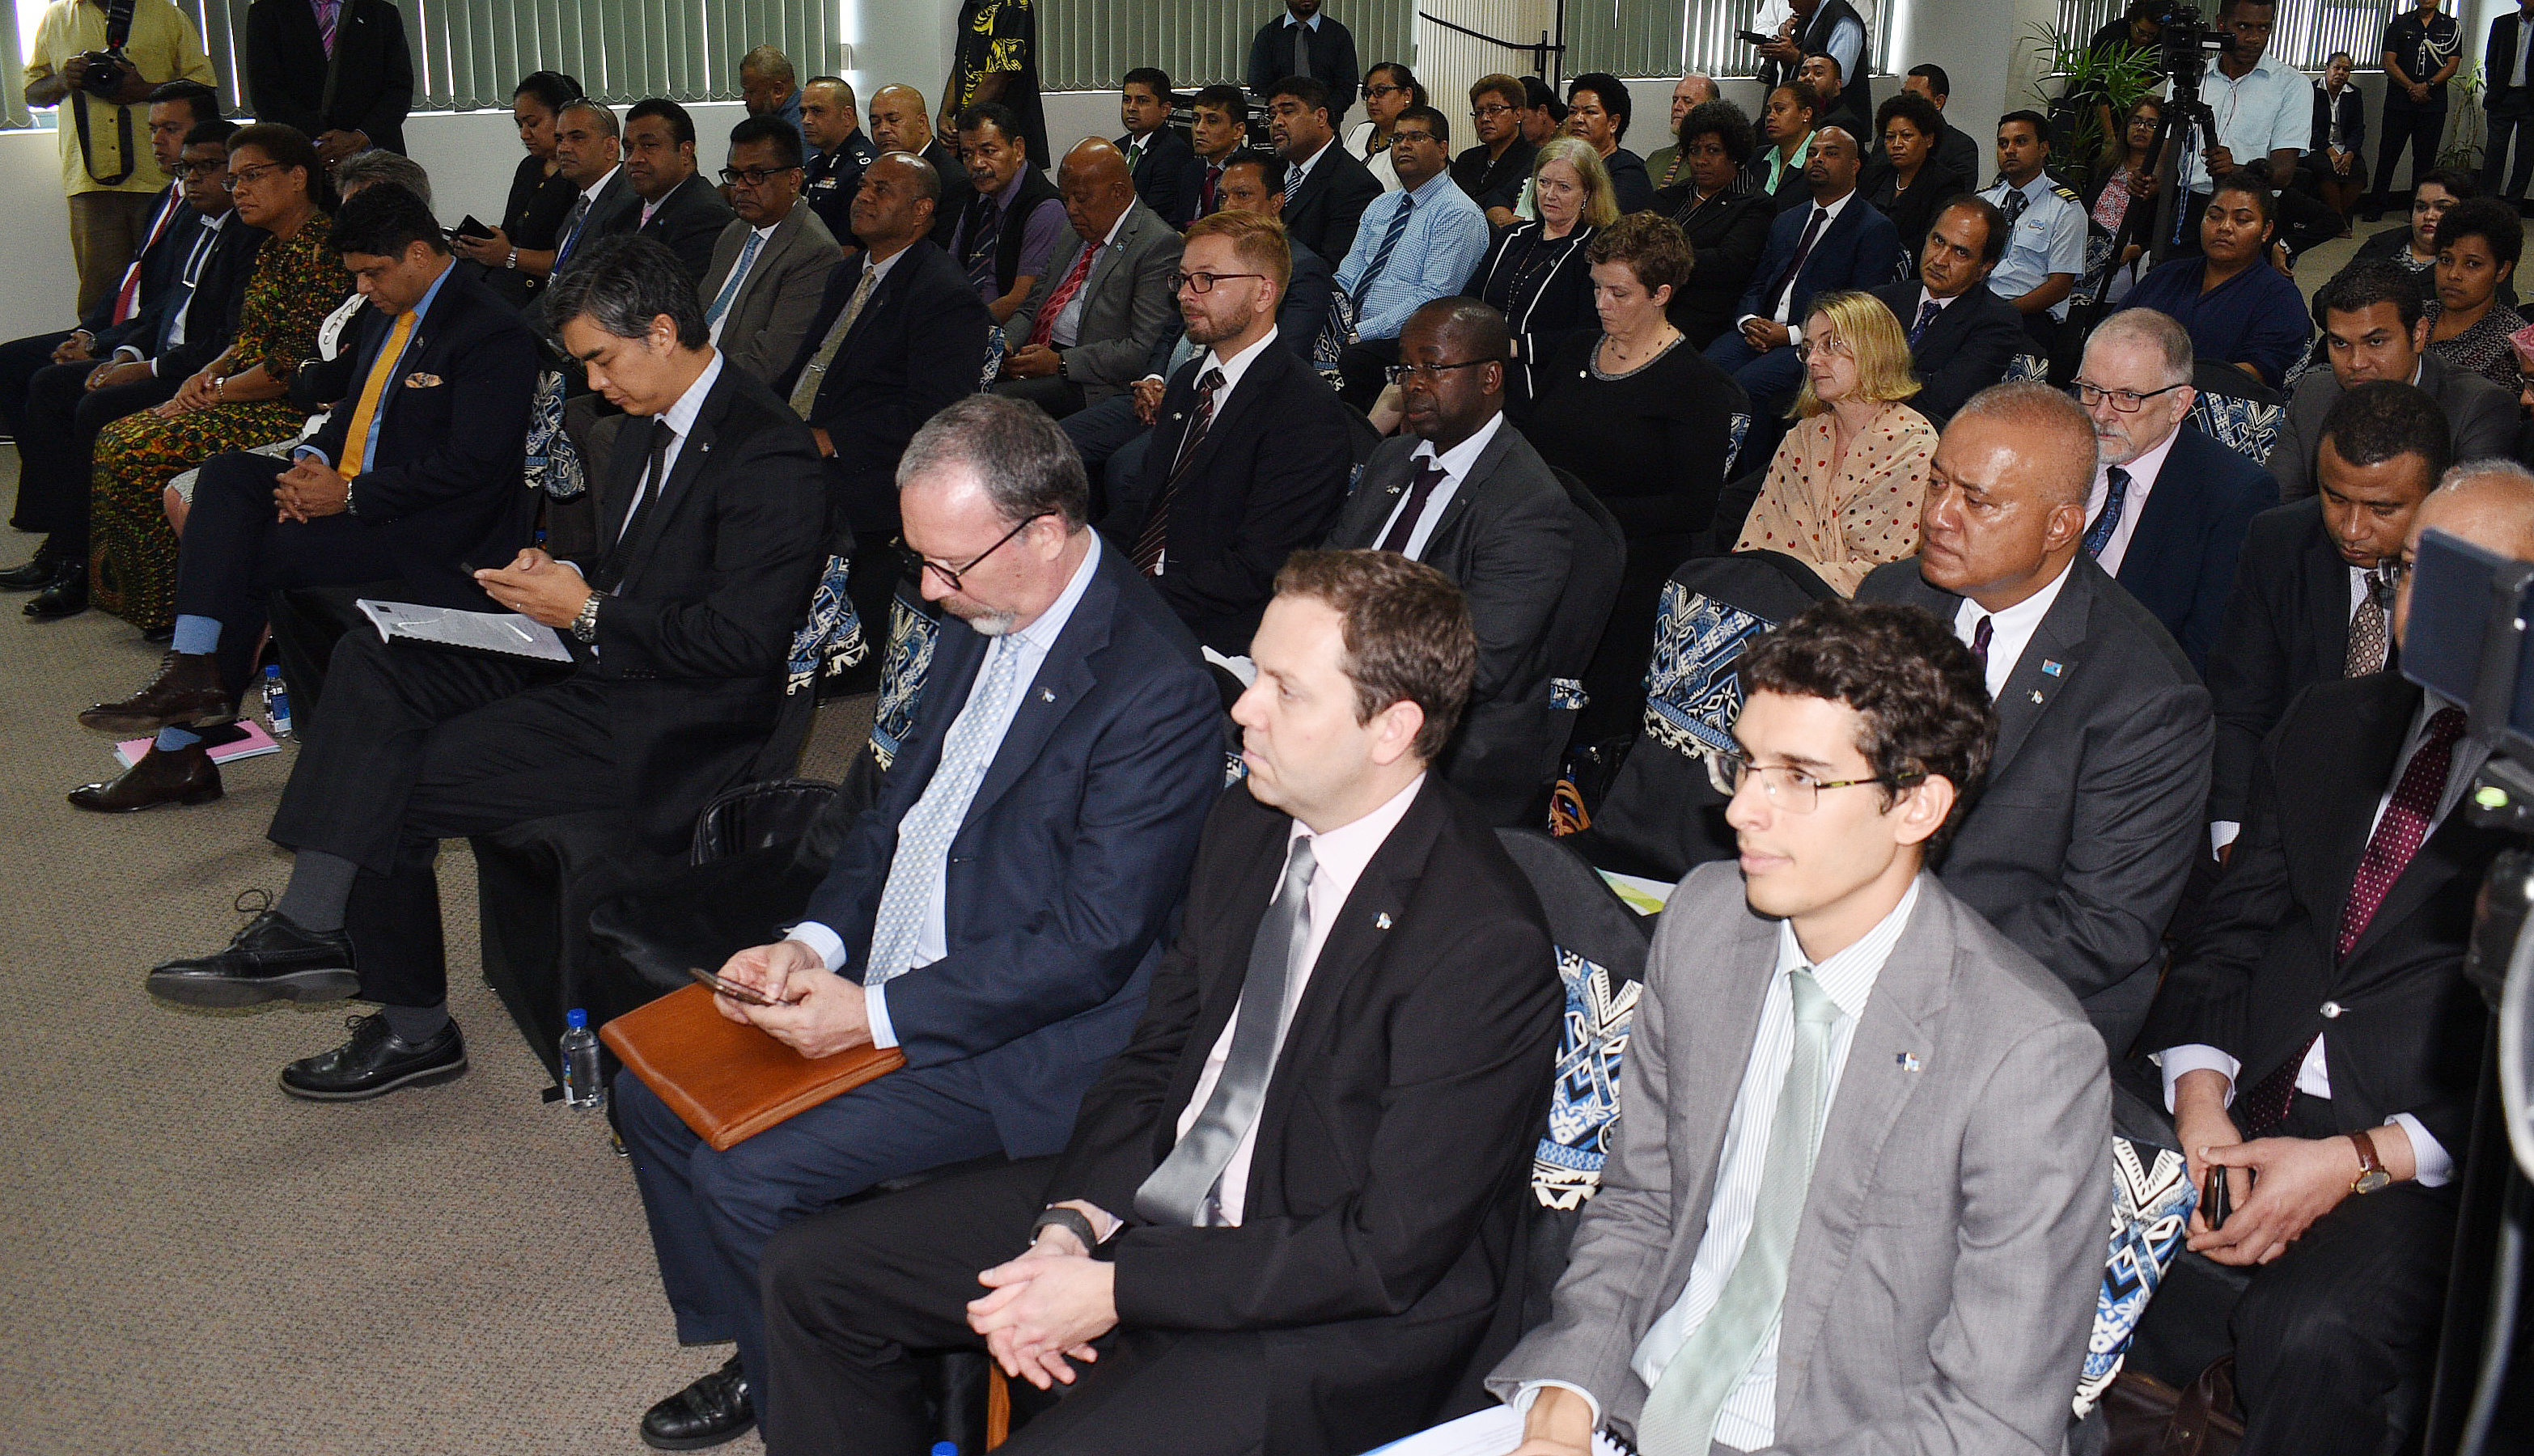 Participants at the third European Union high level Political Dialogue Forum at Suvavou House in Suva on May 23, 2018. Photo: Ronald Kumar